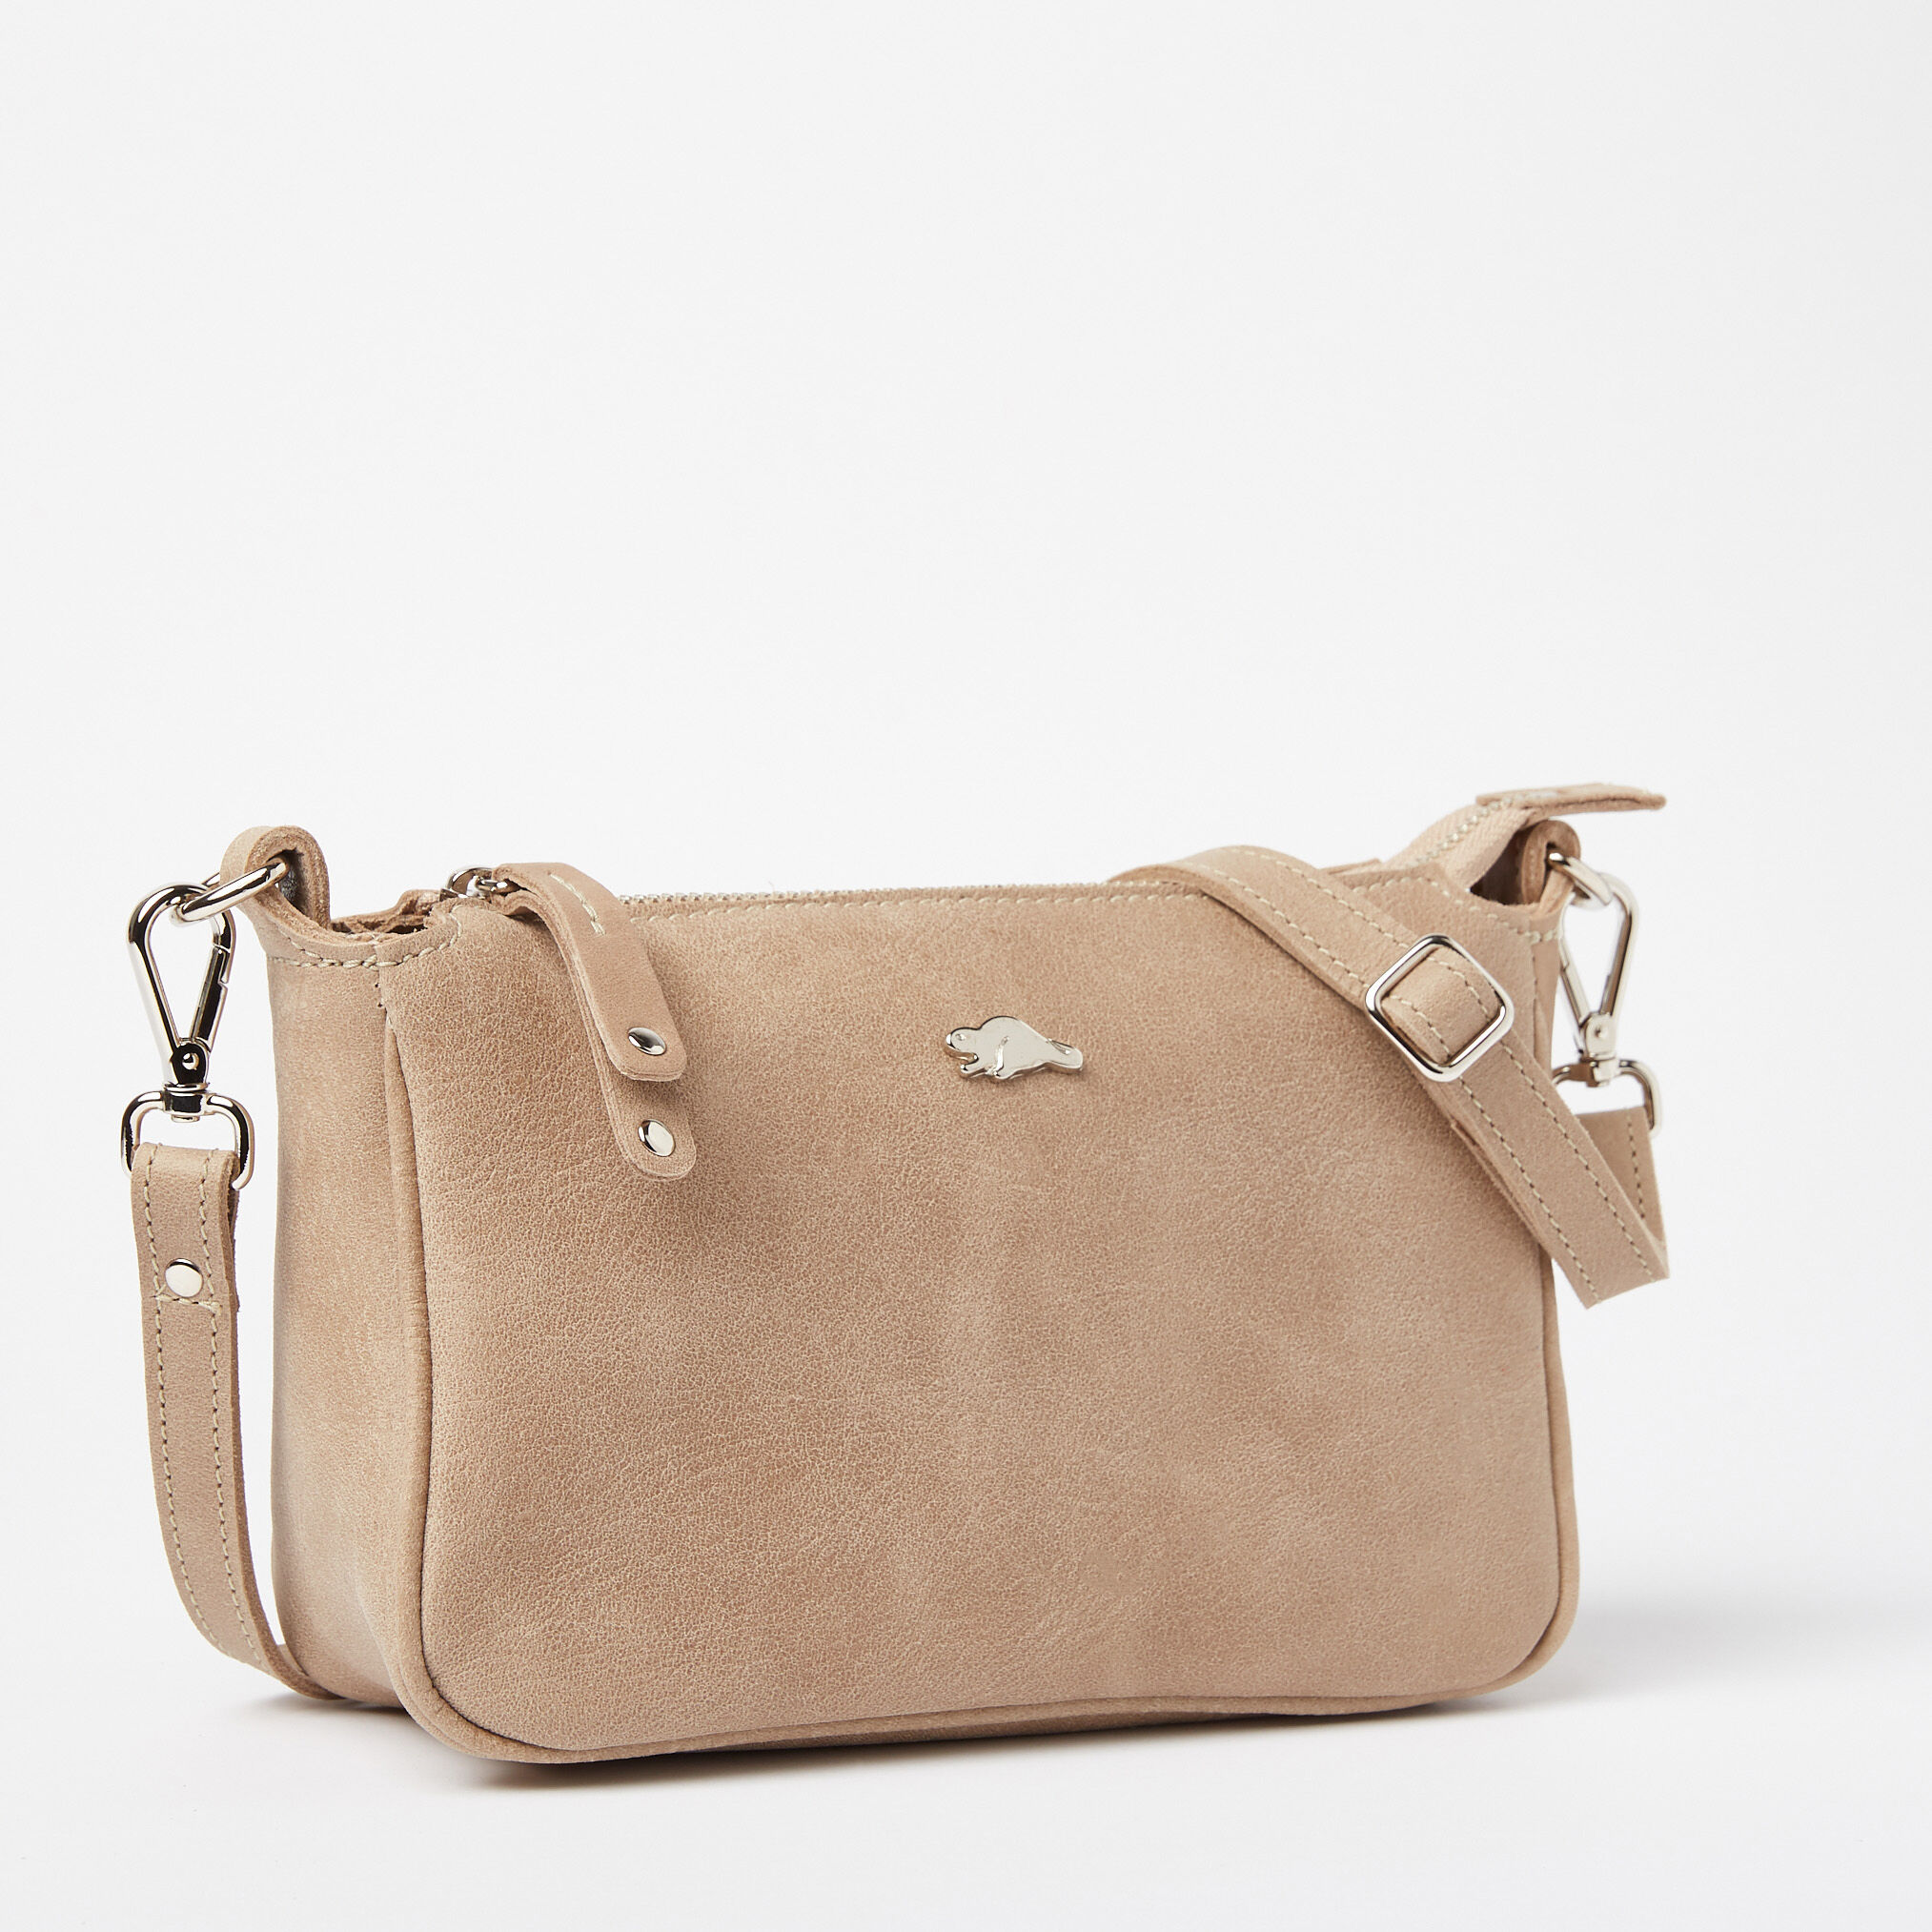 9c955836154a Roots undefined andie bag tribe undefined jpg 962x962 Roots bag